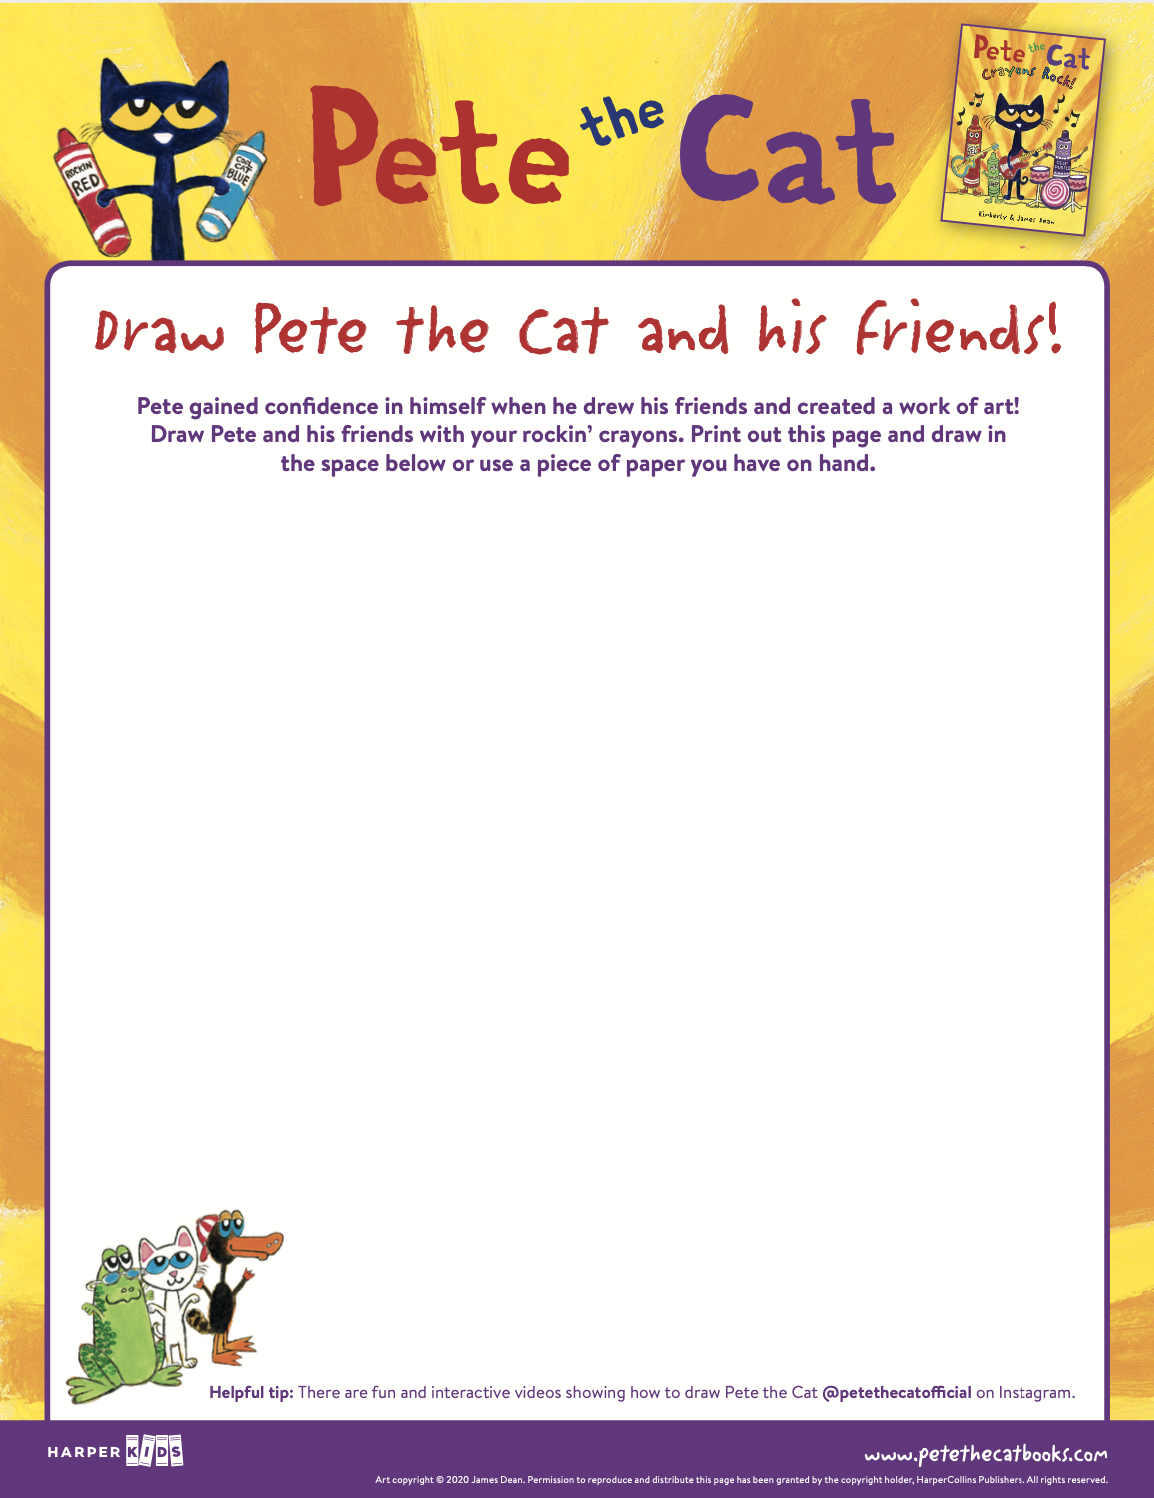 Draw Pete the Cat and his friends!